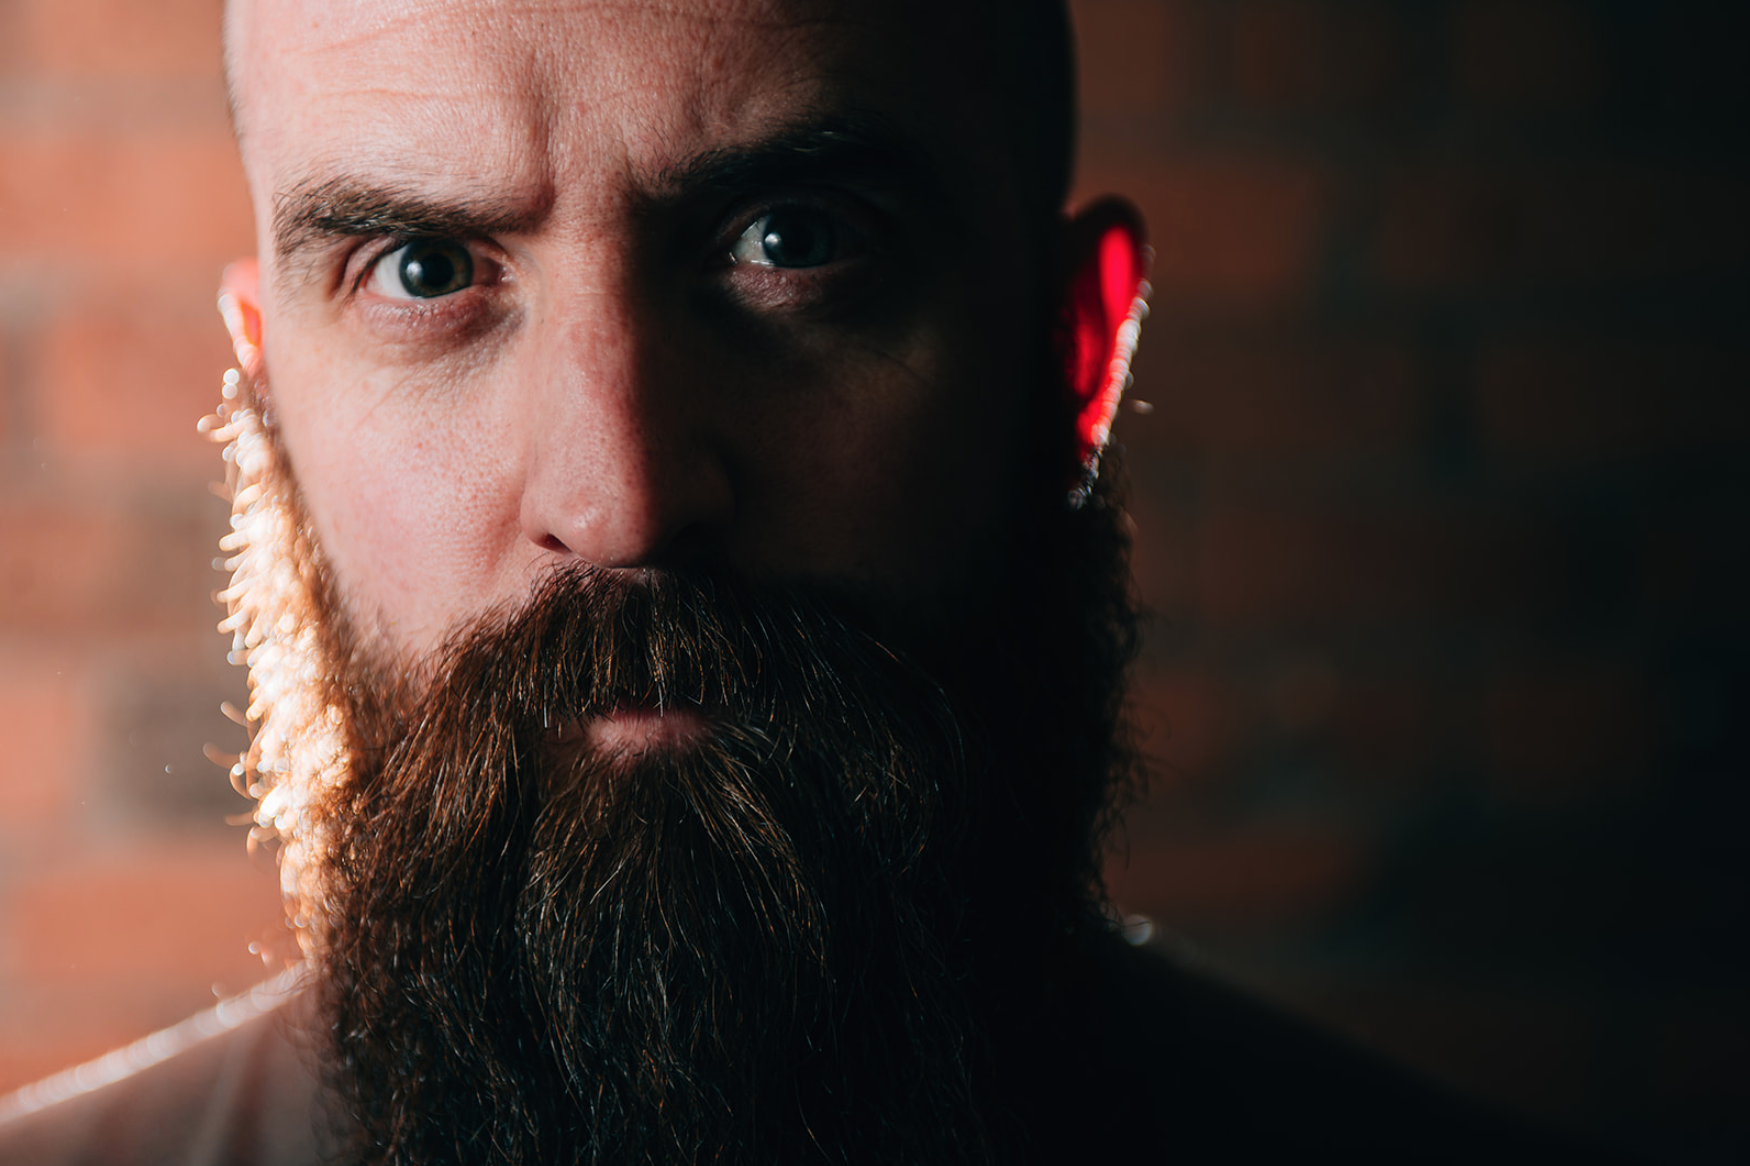 a bearded man staring intensely